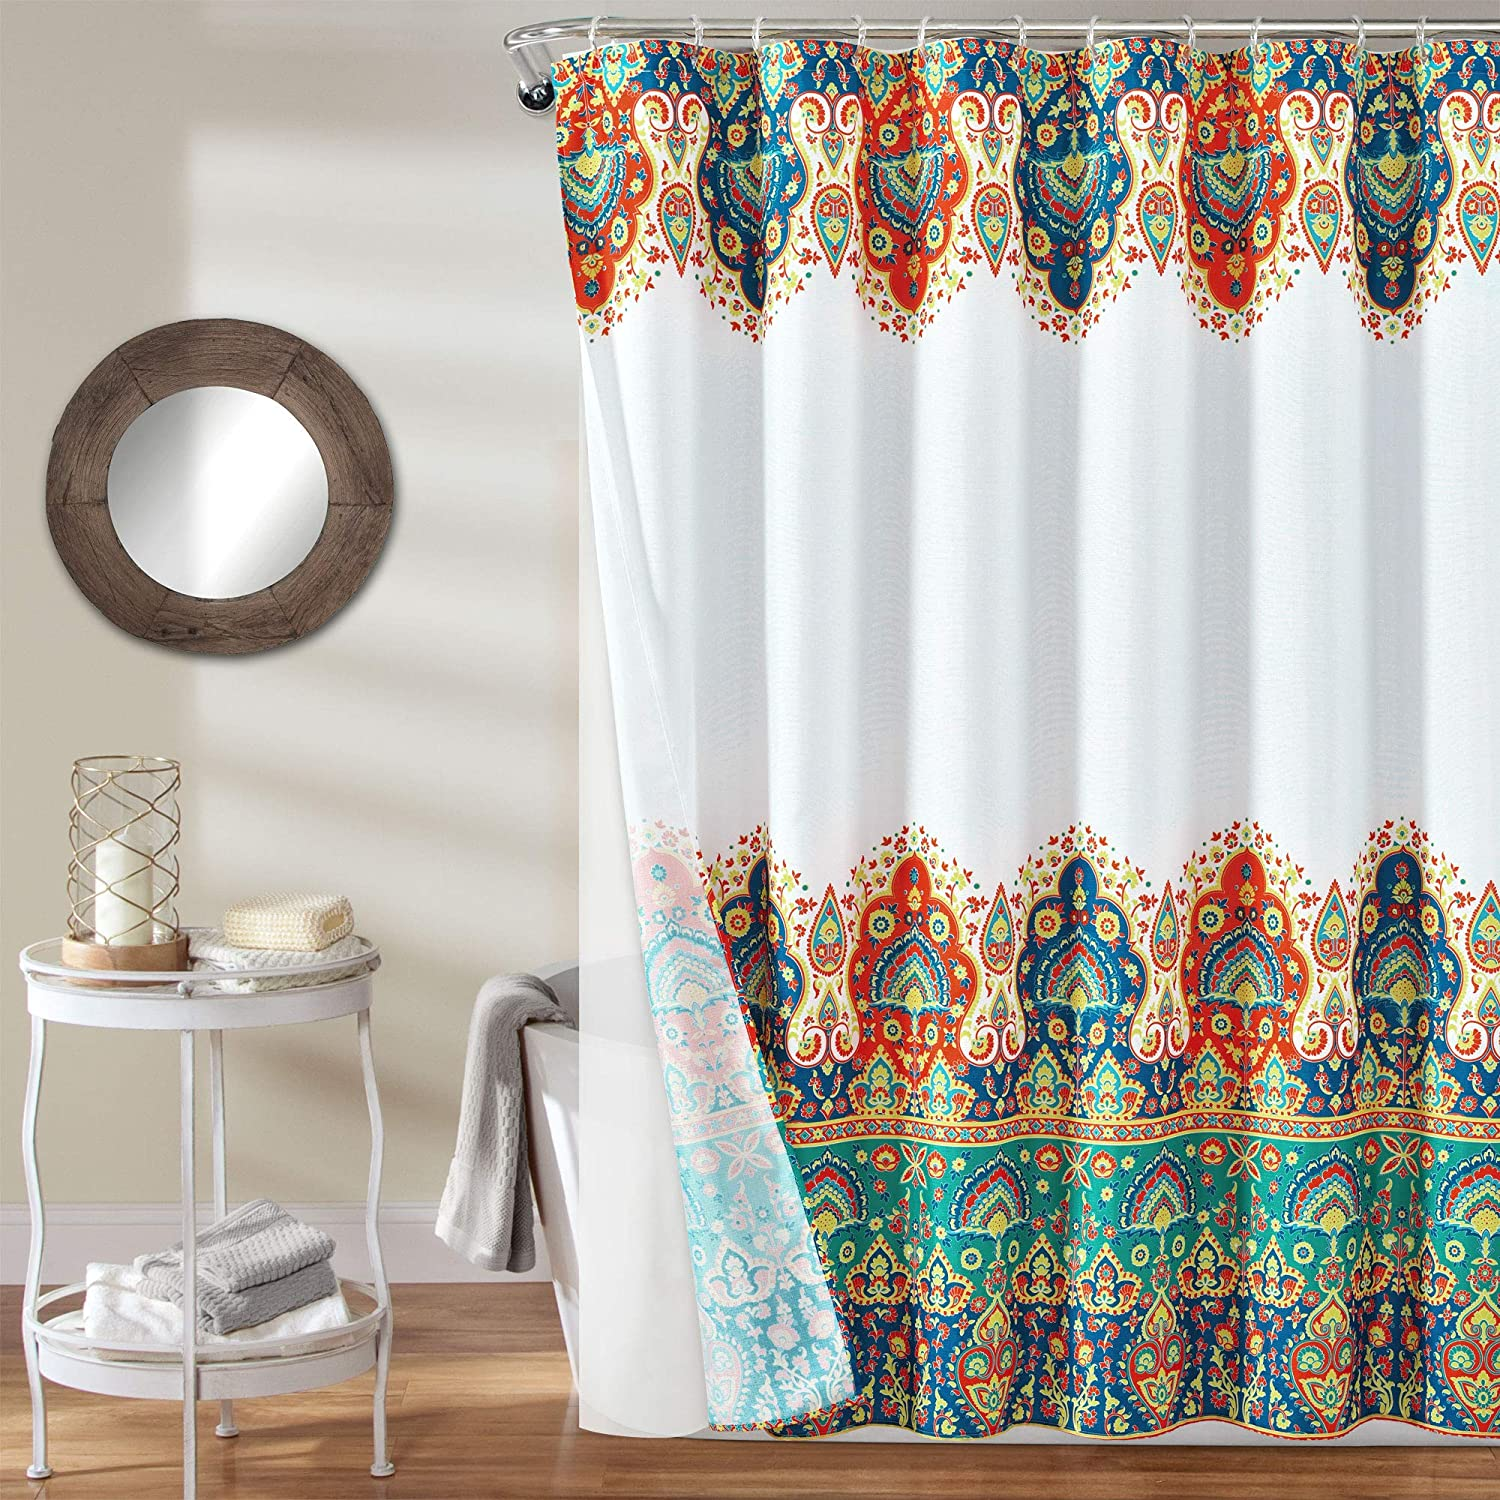 Lush Decor - 16T004413 Bohemian Meadow Shower Curtain with Peva Lining and Rings, 14 Piece Complete Set, 72